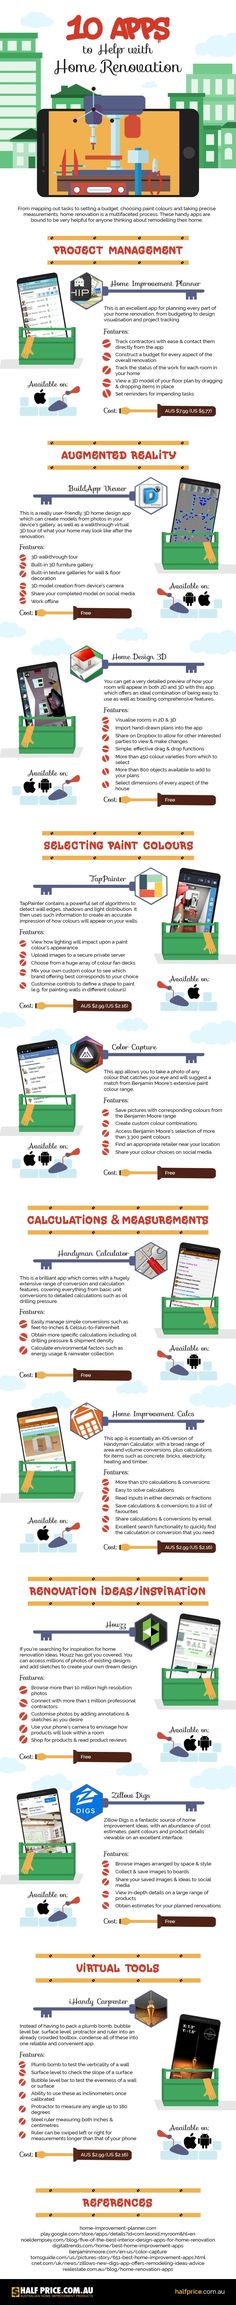 10 Apps To Help With Home Renovation #Infographic #Apps #HomeRenovation